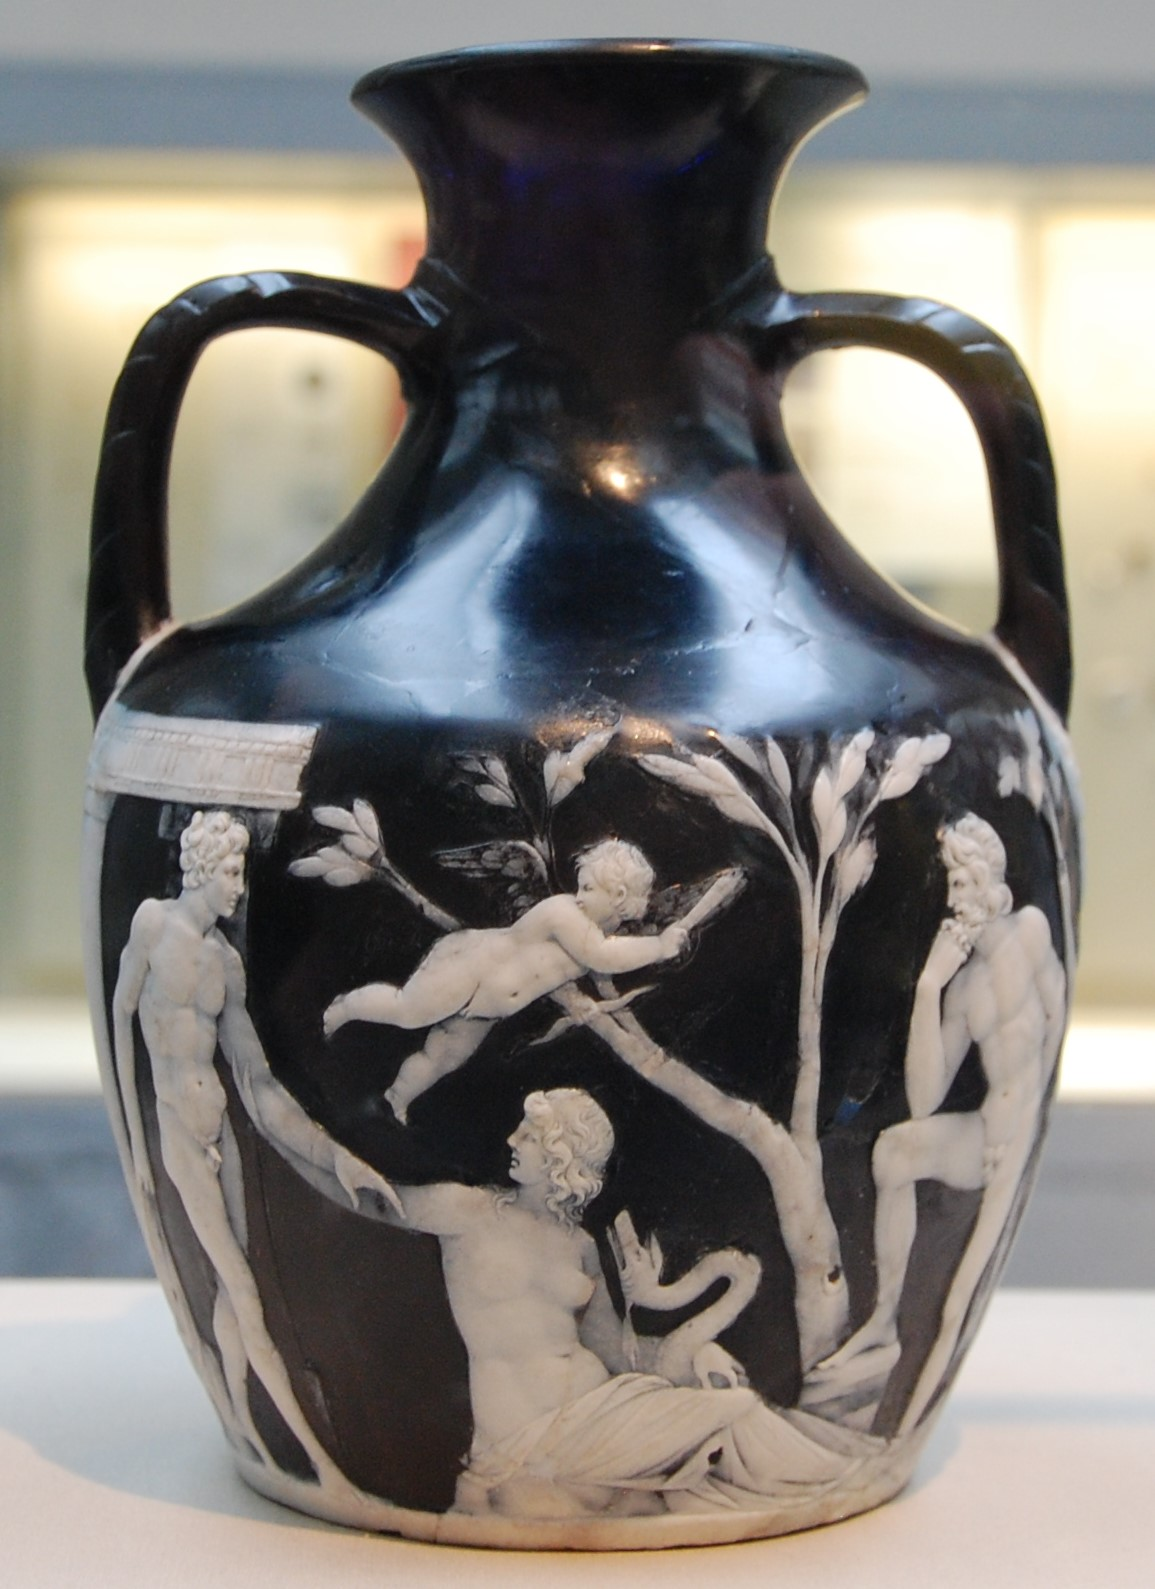 Wedgwood and the portland vase openntedox beta wedgwood and the portland vase reviewsmspy